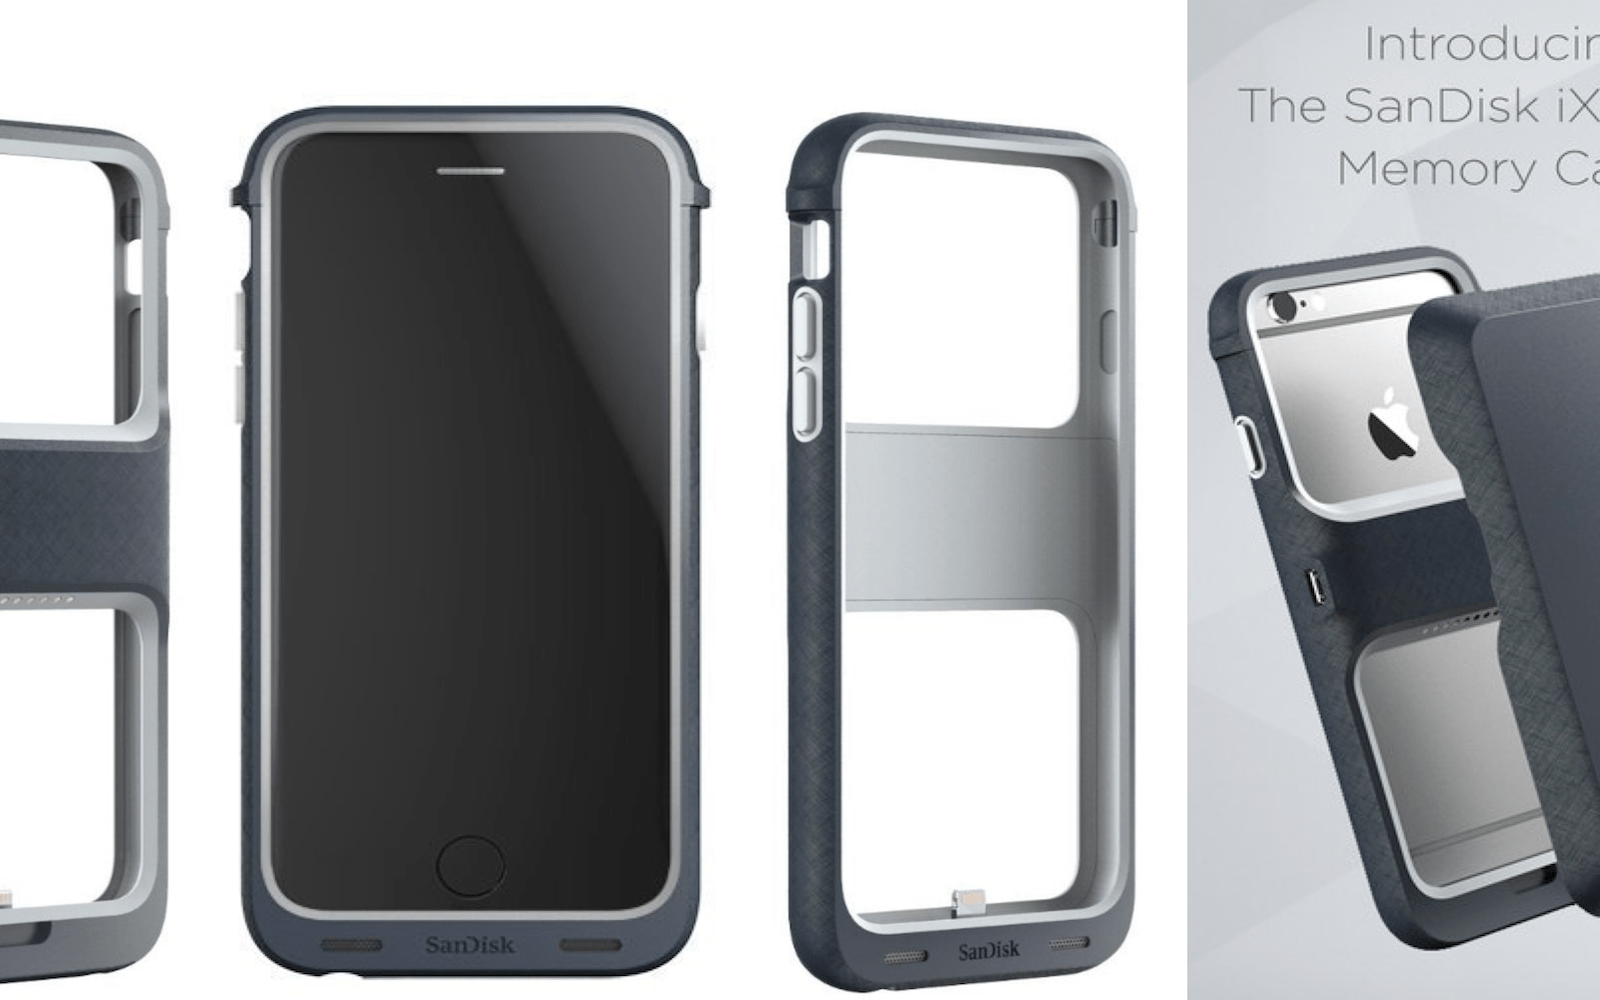 SanDisk's Memory Case puts a Lightning flash drive in a sleek iPhone case w/ optional battery pack